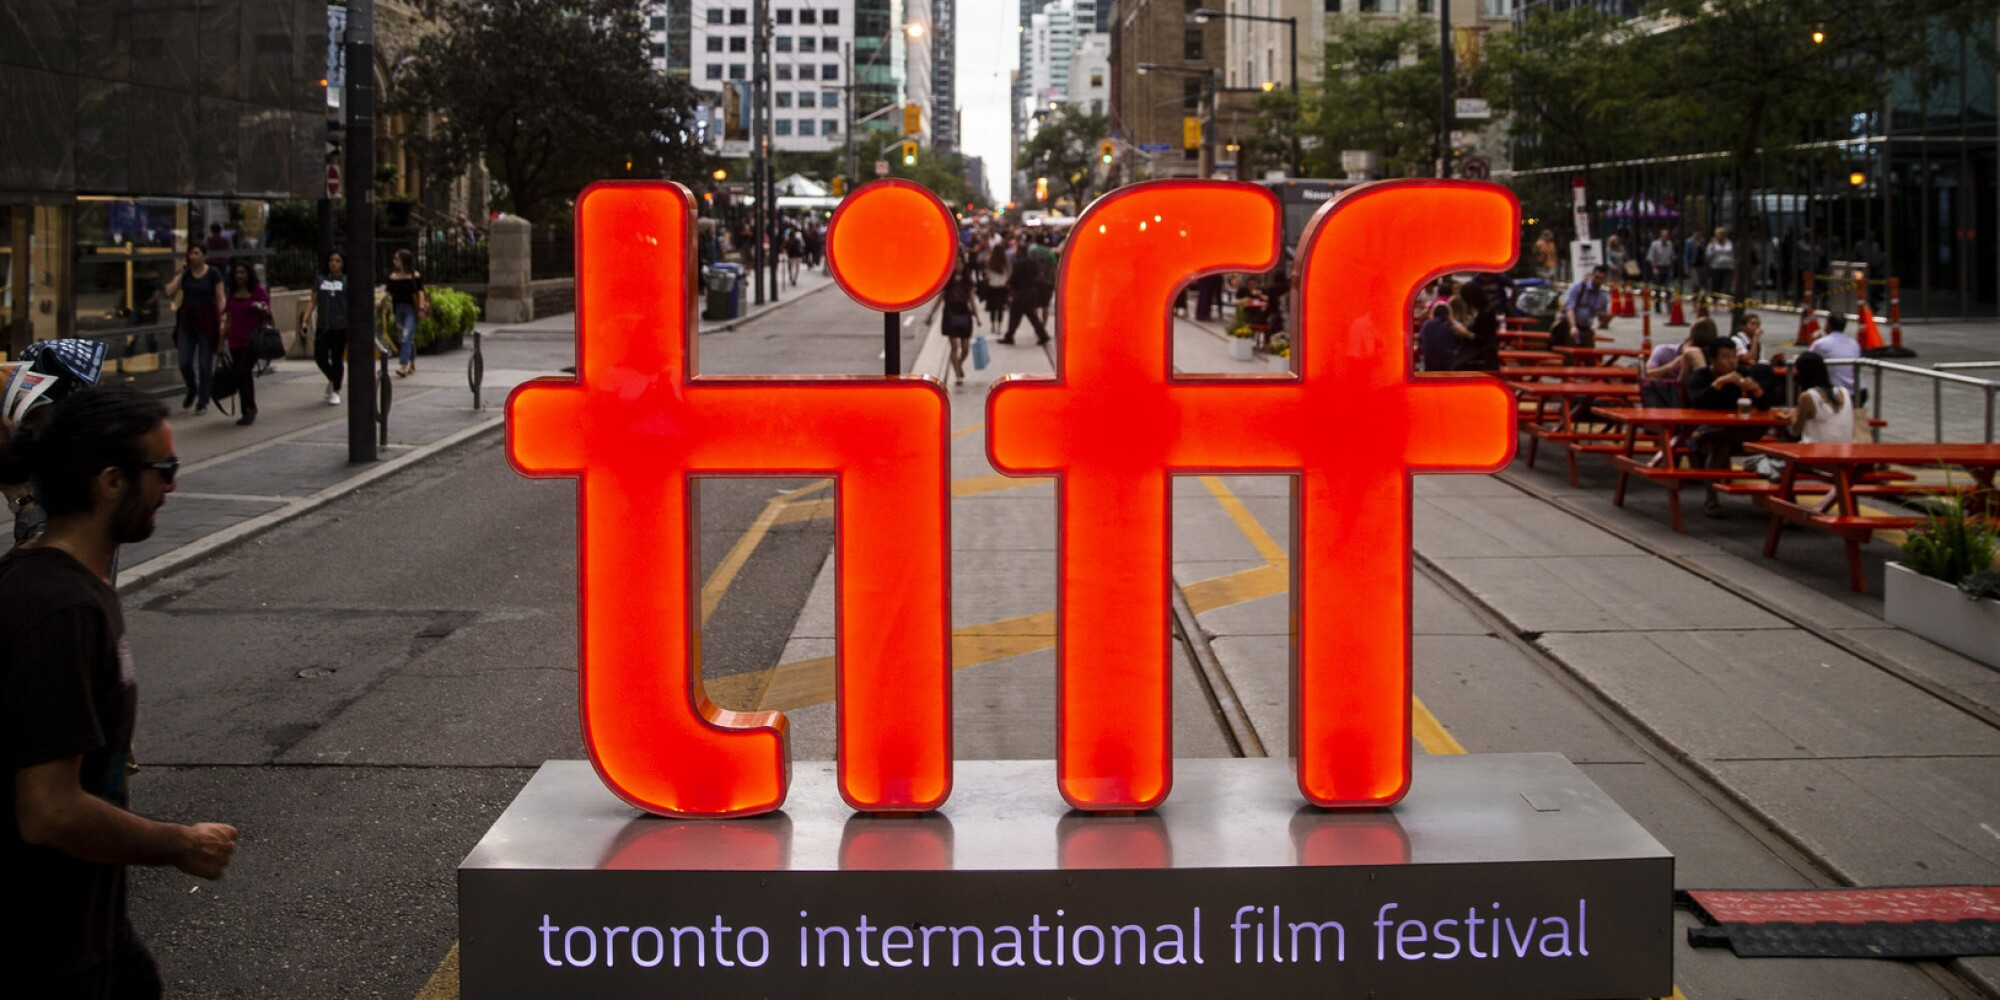 TIFF 2018: From the breakout films to star-studded